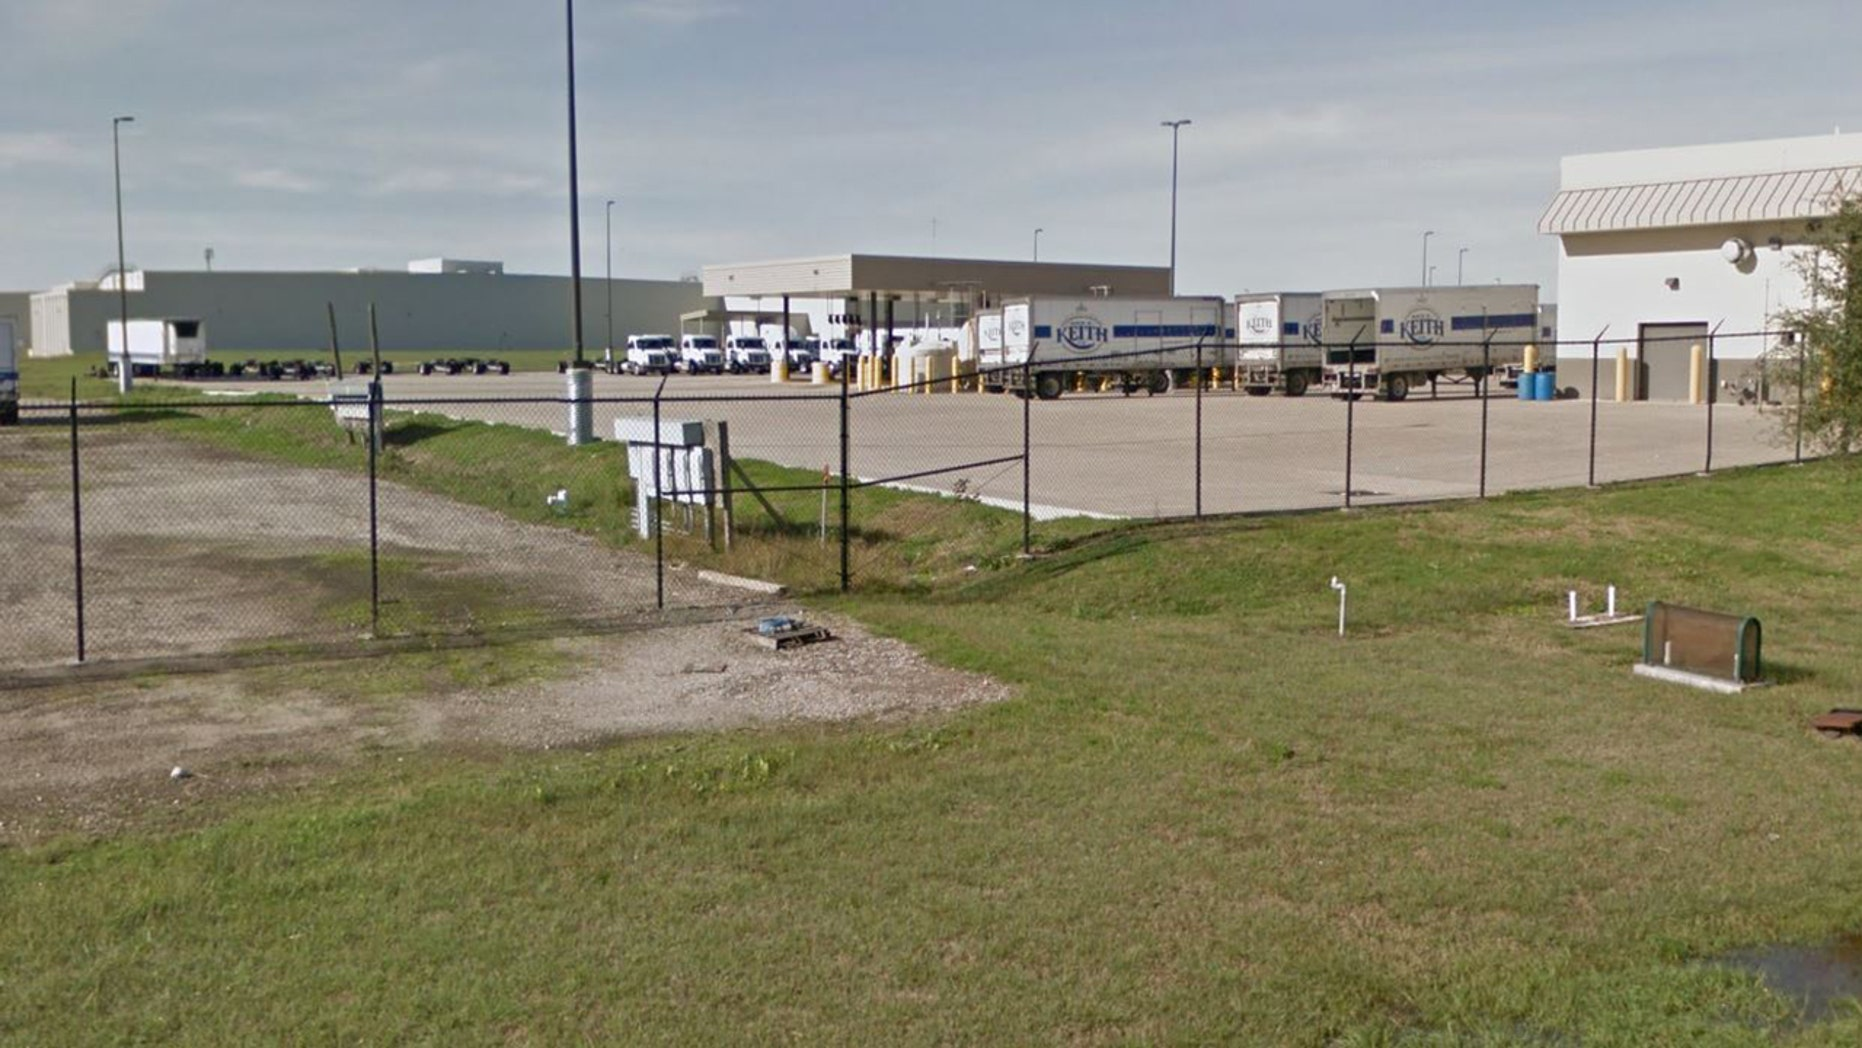 Outside the Ben E. Keith Distribution Center in Missouri City, Texas.